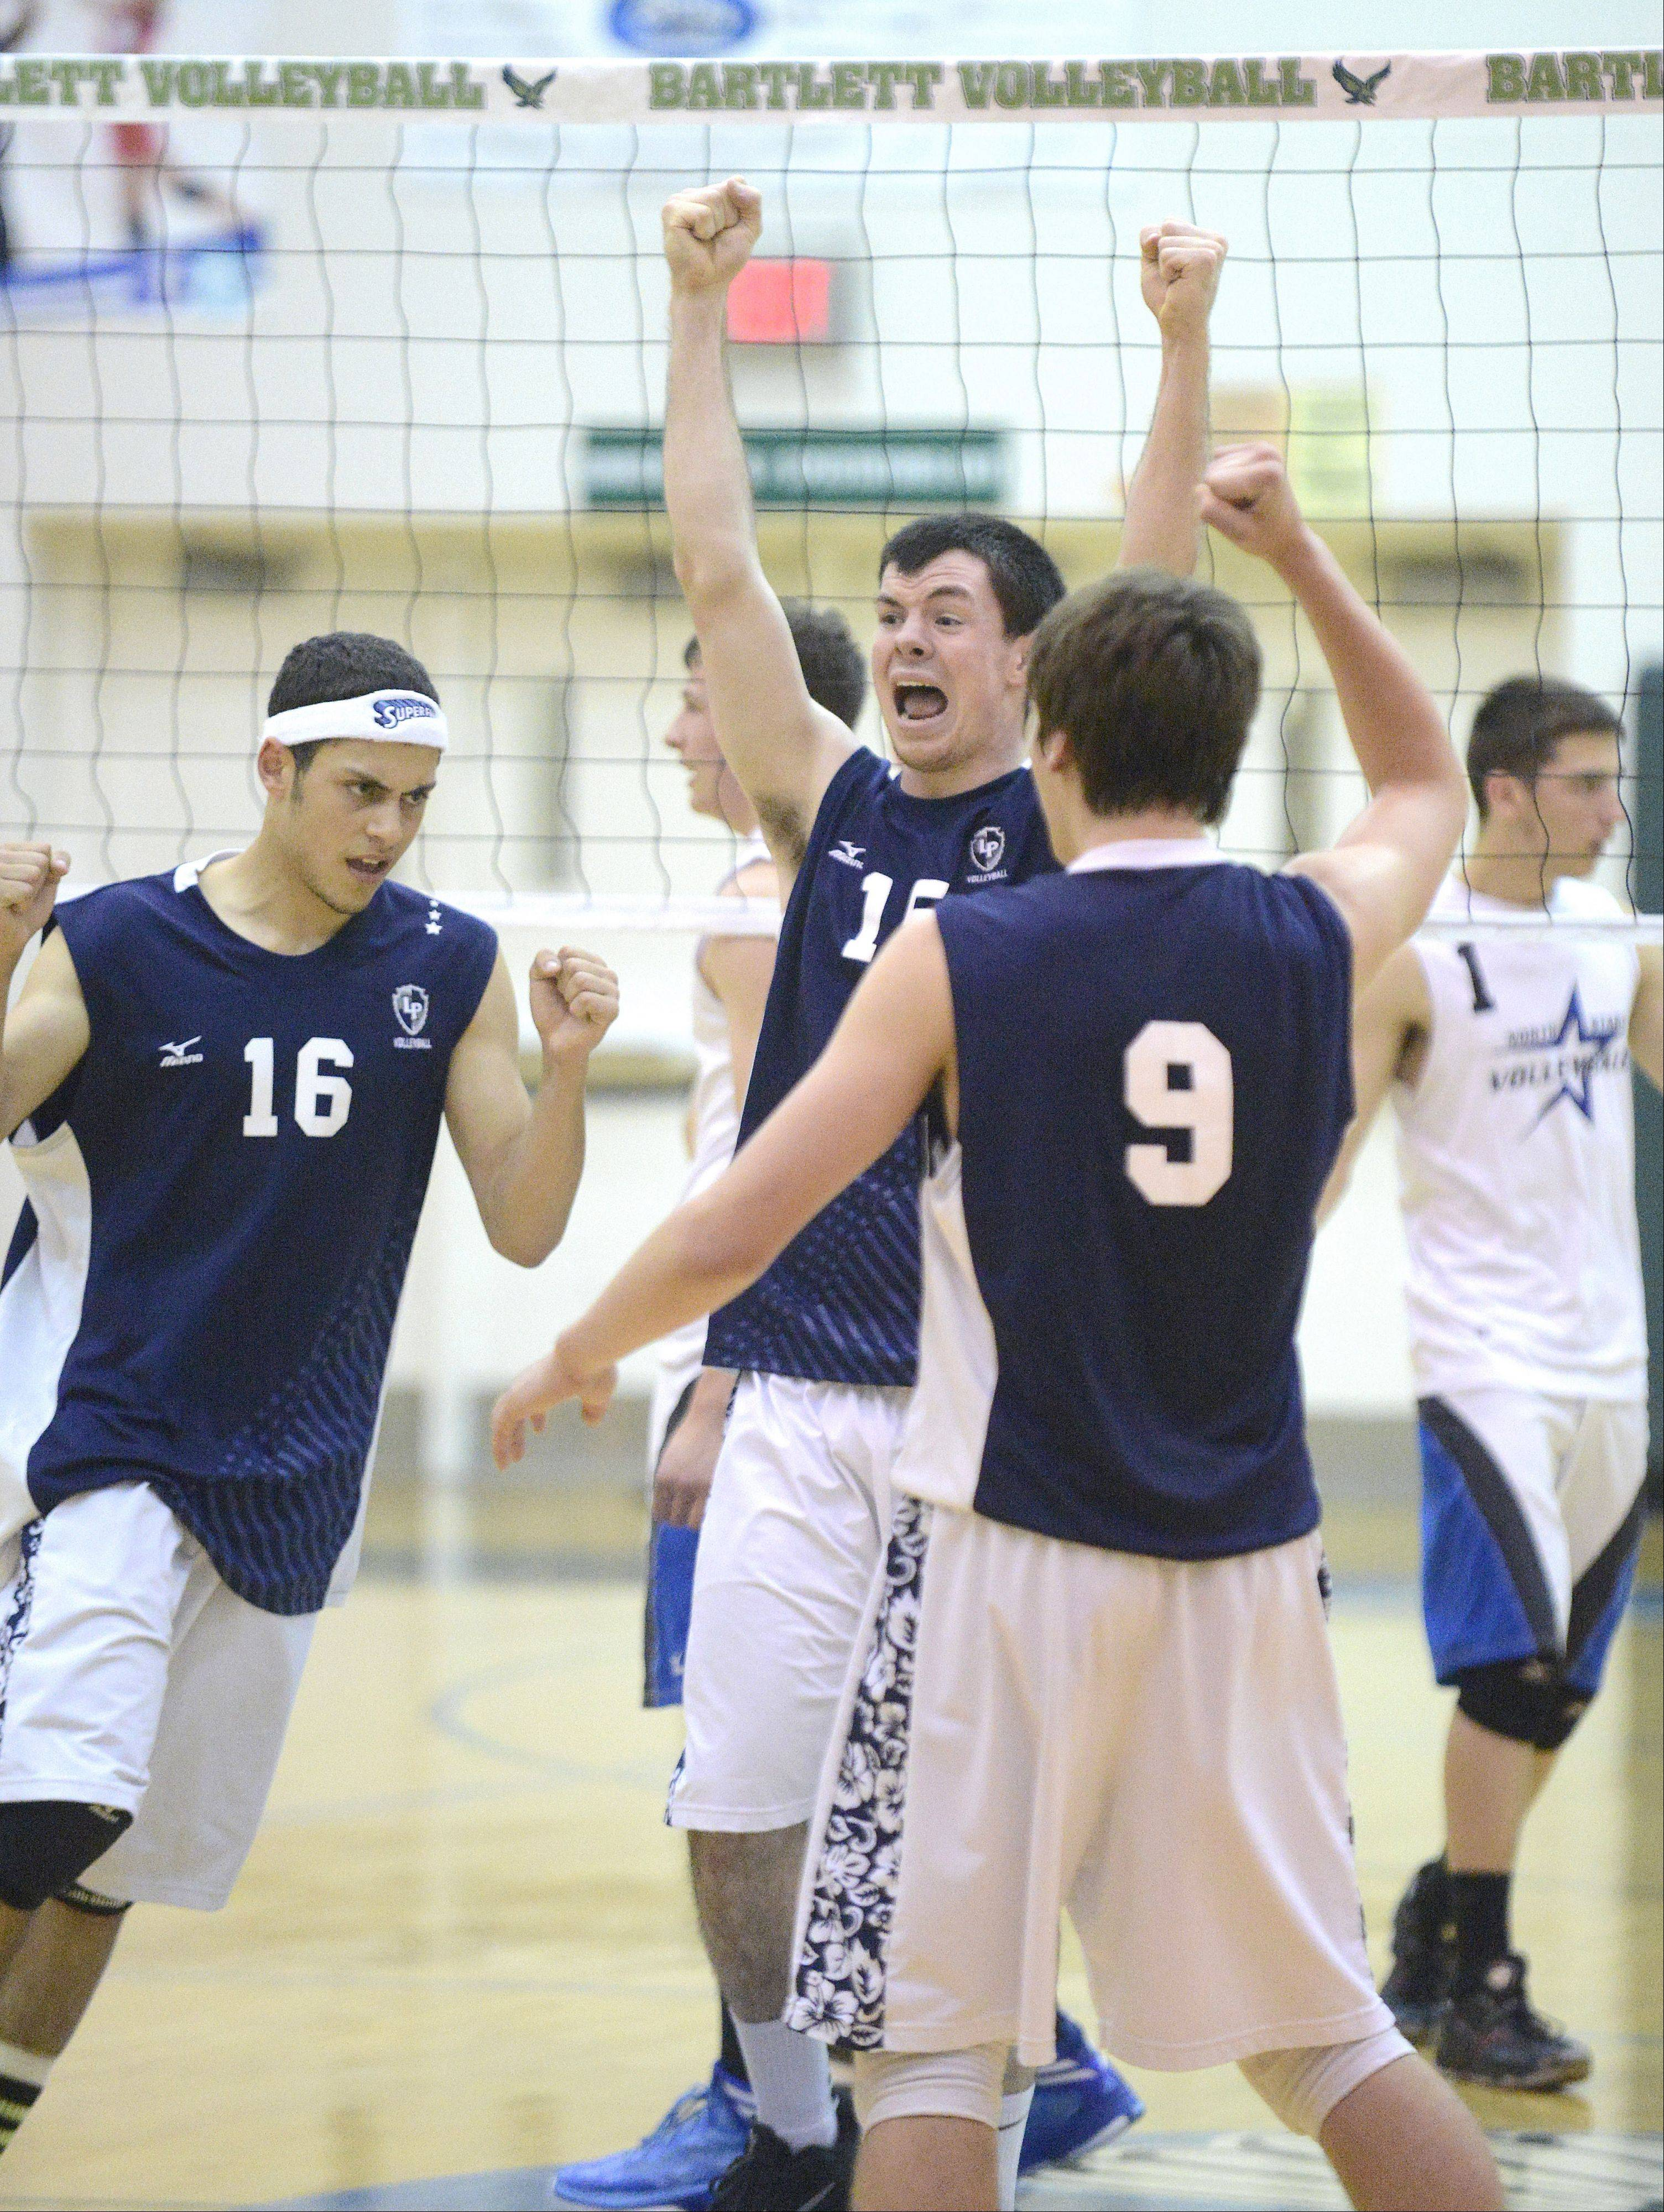 Lake Park's Sean Moore, center, celebrates a point over St. Charles North with teammates Dominick Terry (16) and Quin Krisik (9) in the first game of sectional championship play in Bartlett on Tuesday.